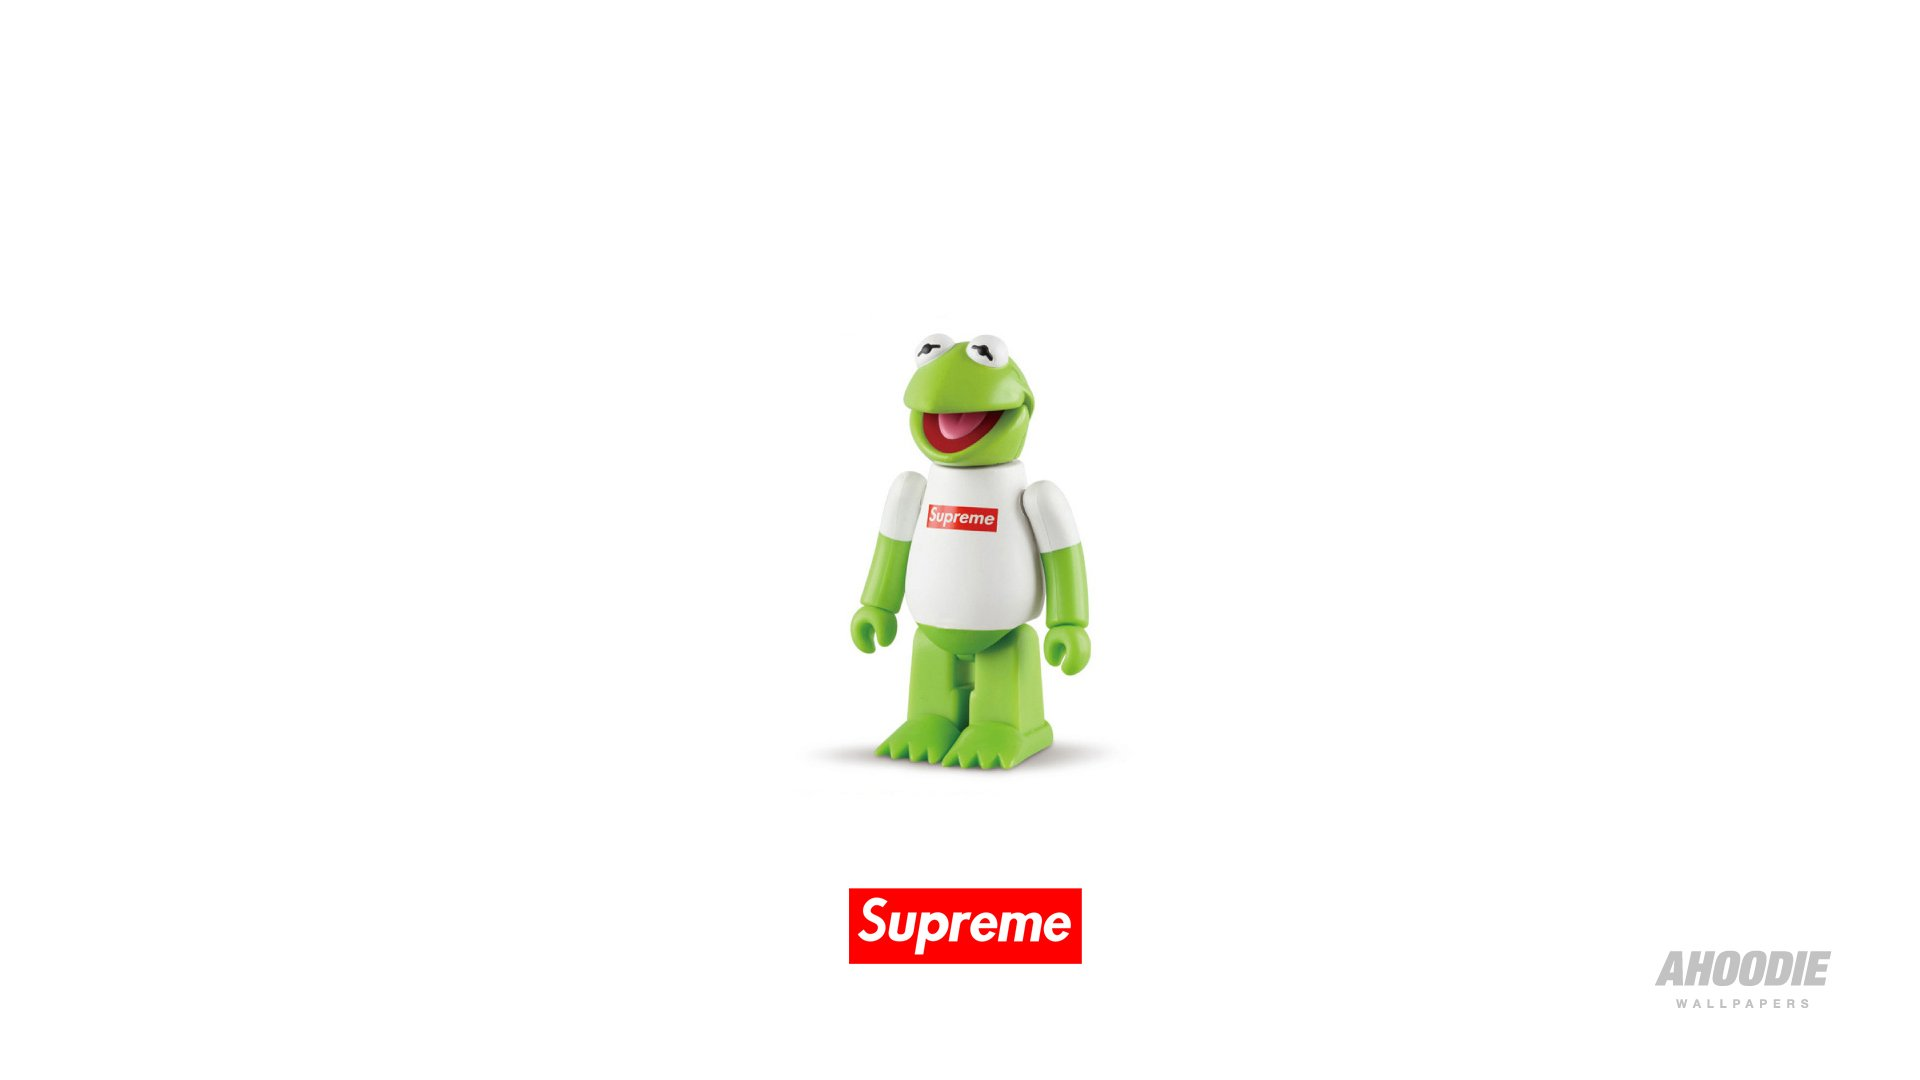 Supreme Wallpaper Tumblr A dose of dopenes 1920x1080